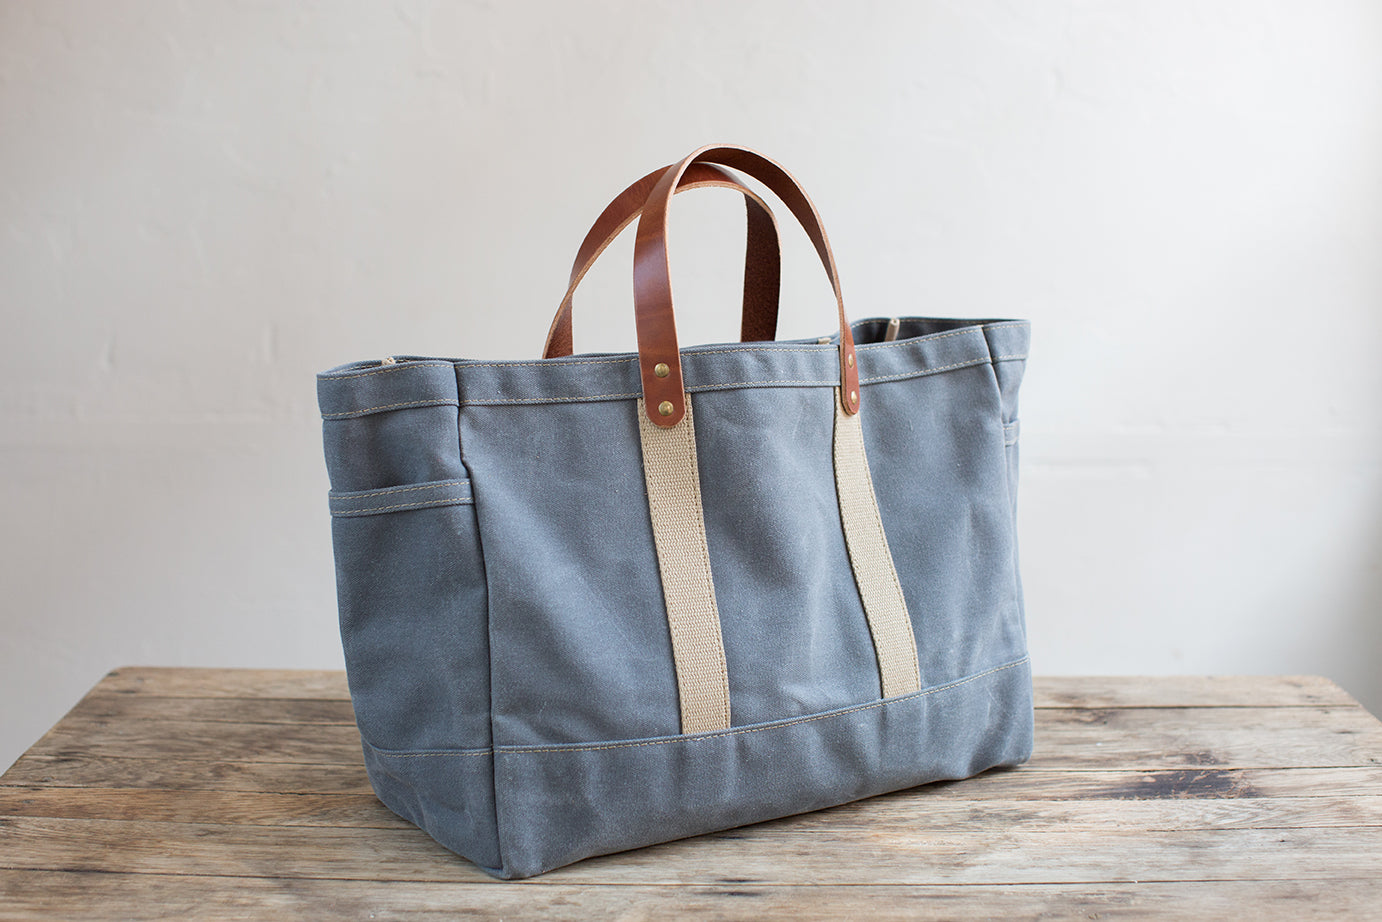 Wax Canvas Garden Tote w/ Leather Handles